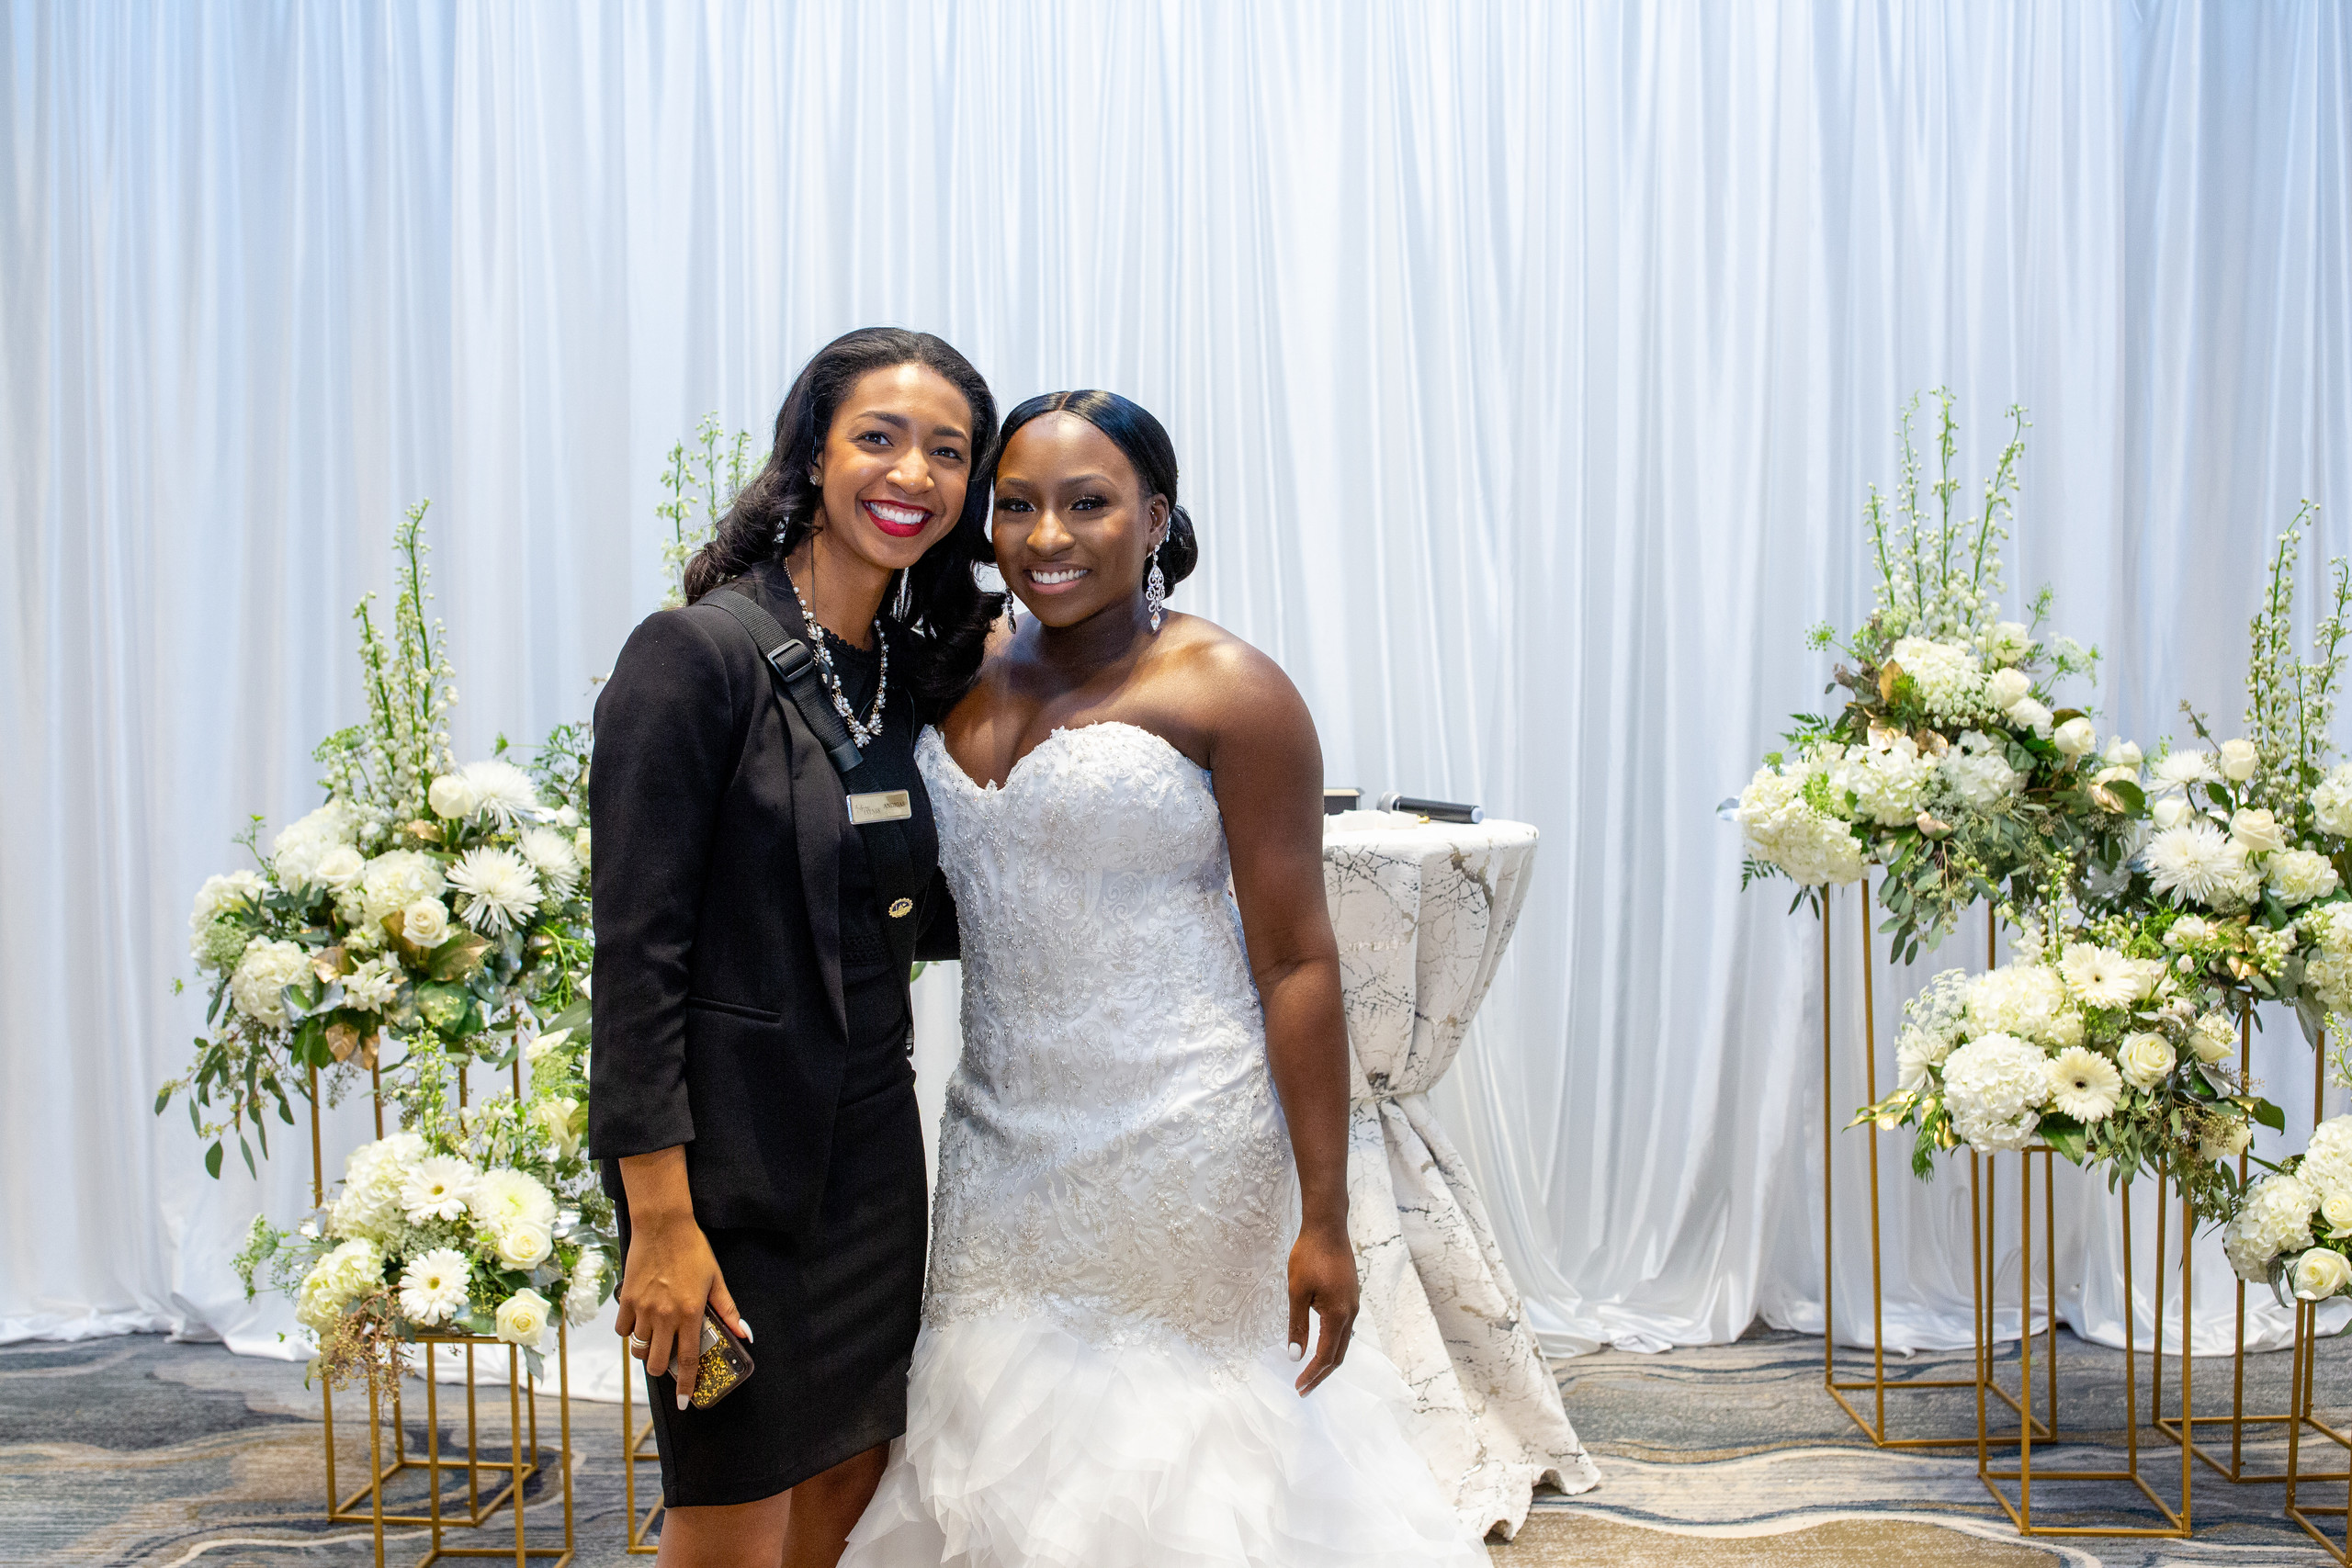 The bride poses with Andrias of Andrias Events during the Ceremony area reveal before the wedding ceremony at the Hilton Main in Norfolk, Virginia.